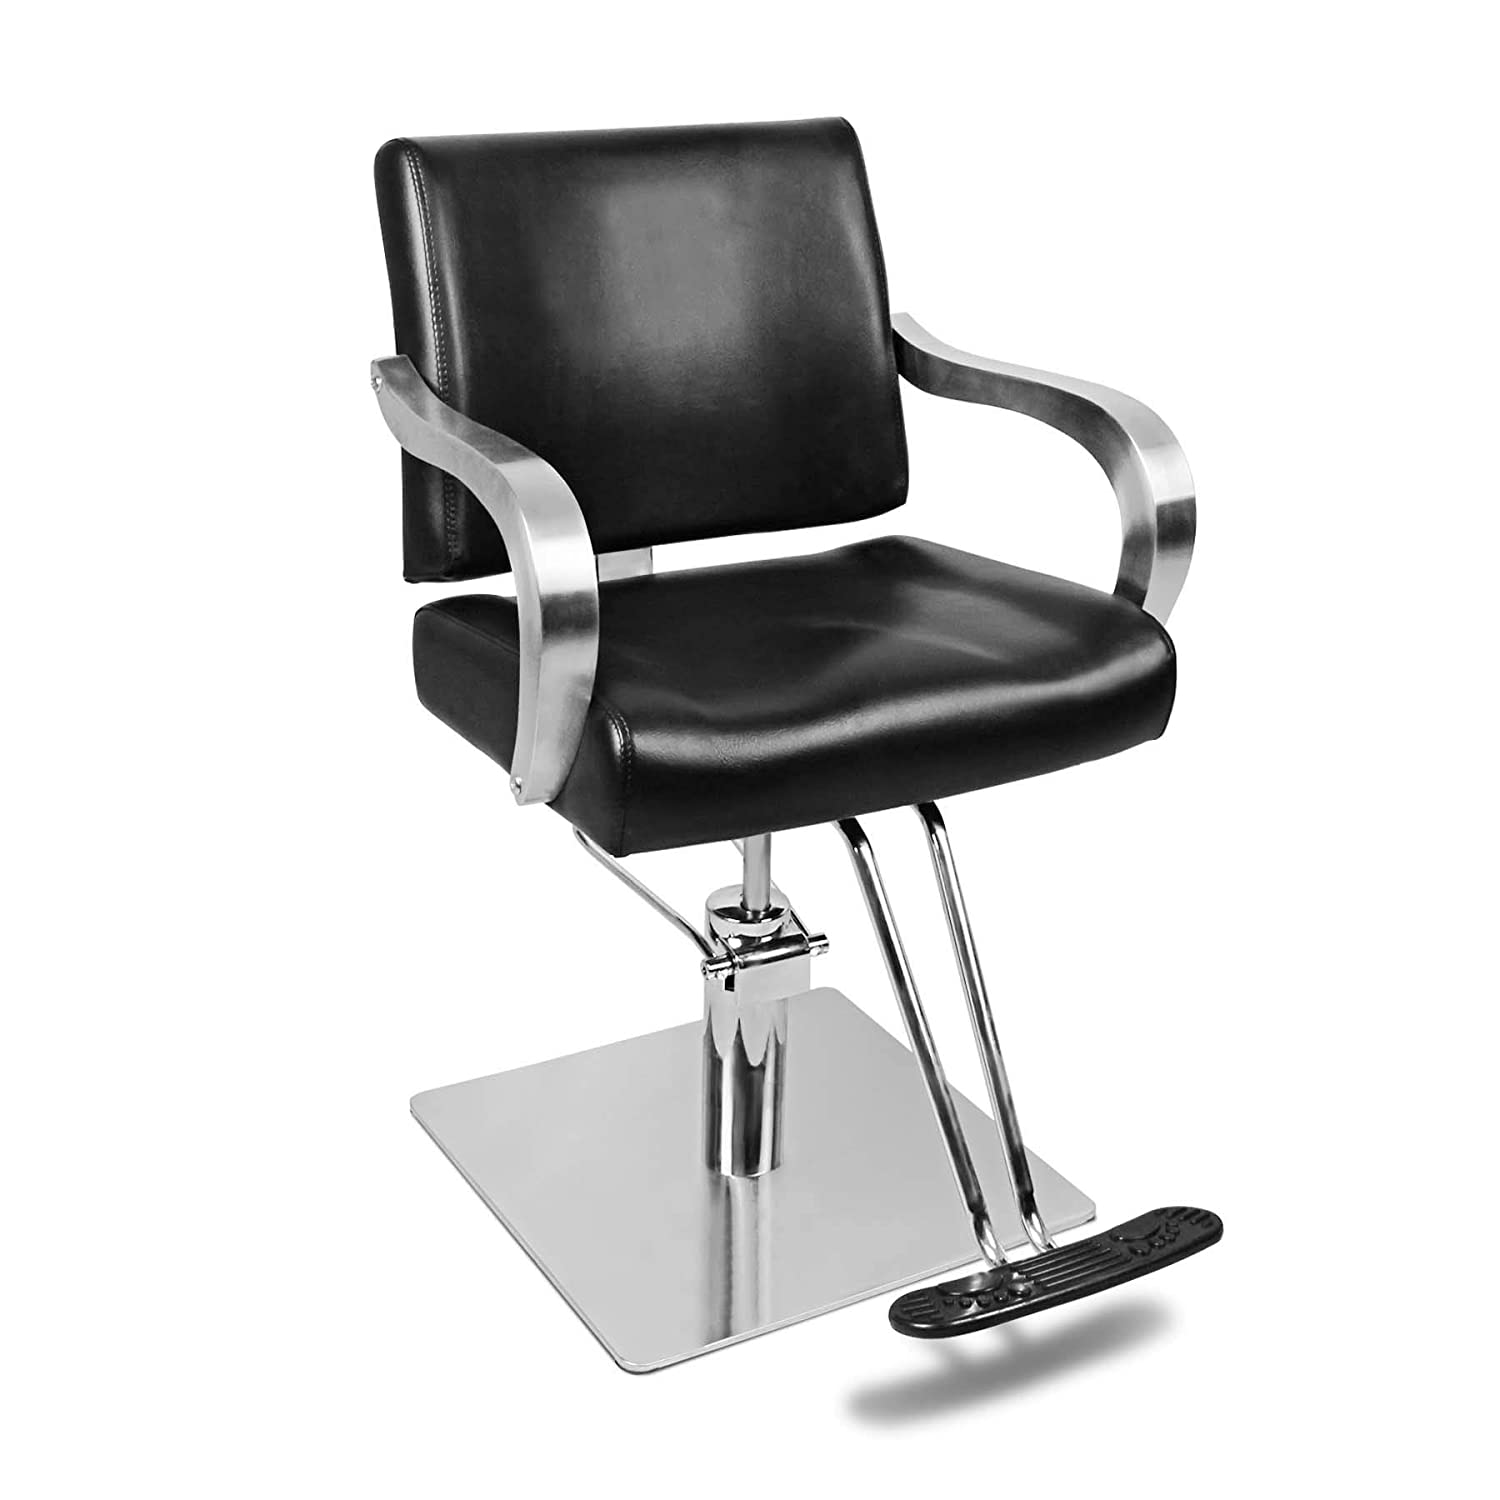 Lillyvale Salon Barbers Barber Chair Styling Tattoo Threading Hairdresser Beauty Barcelona